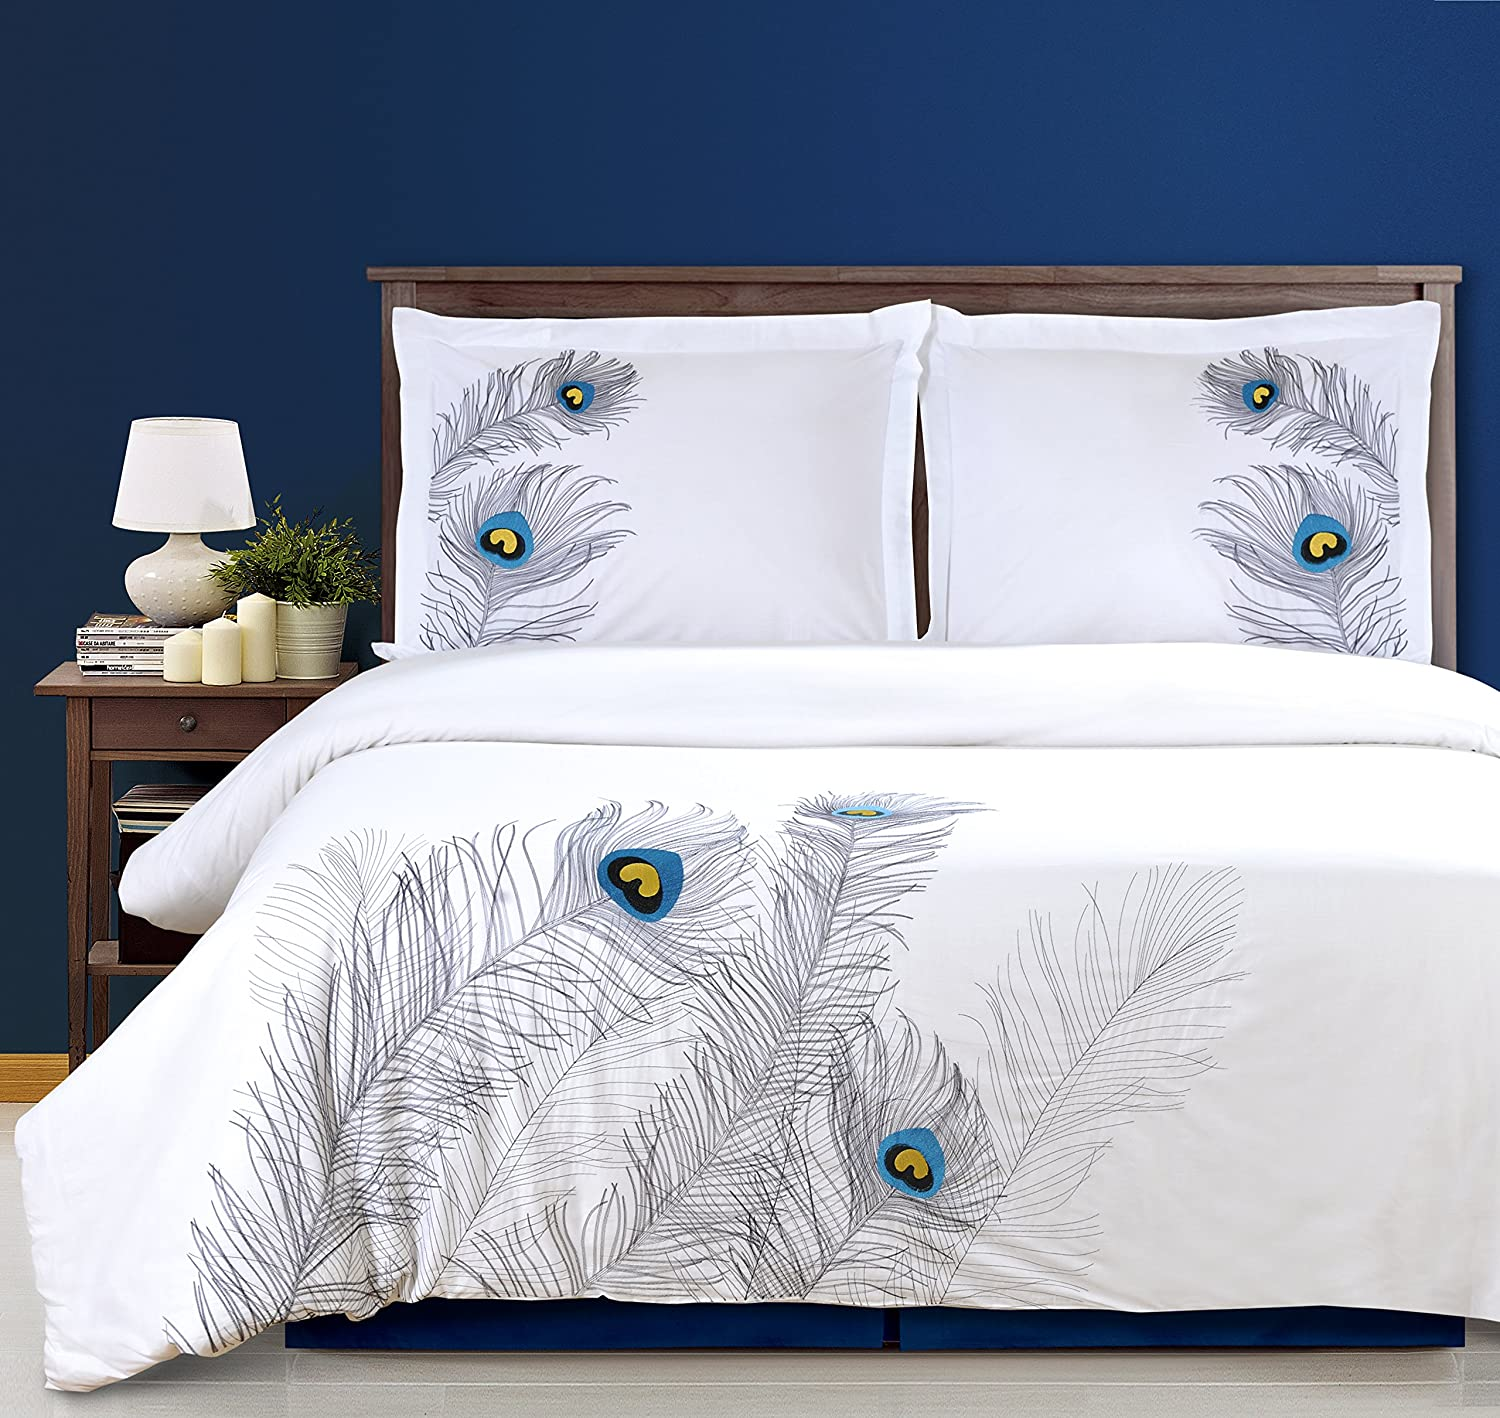 100% Cotton, 3-Piece Full/Queen Single Ply, Soft, Embroidered Peacock Duvet Cover Set, Silver